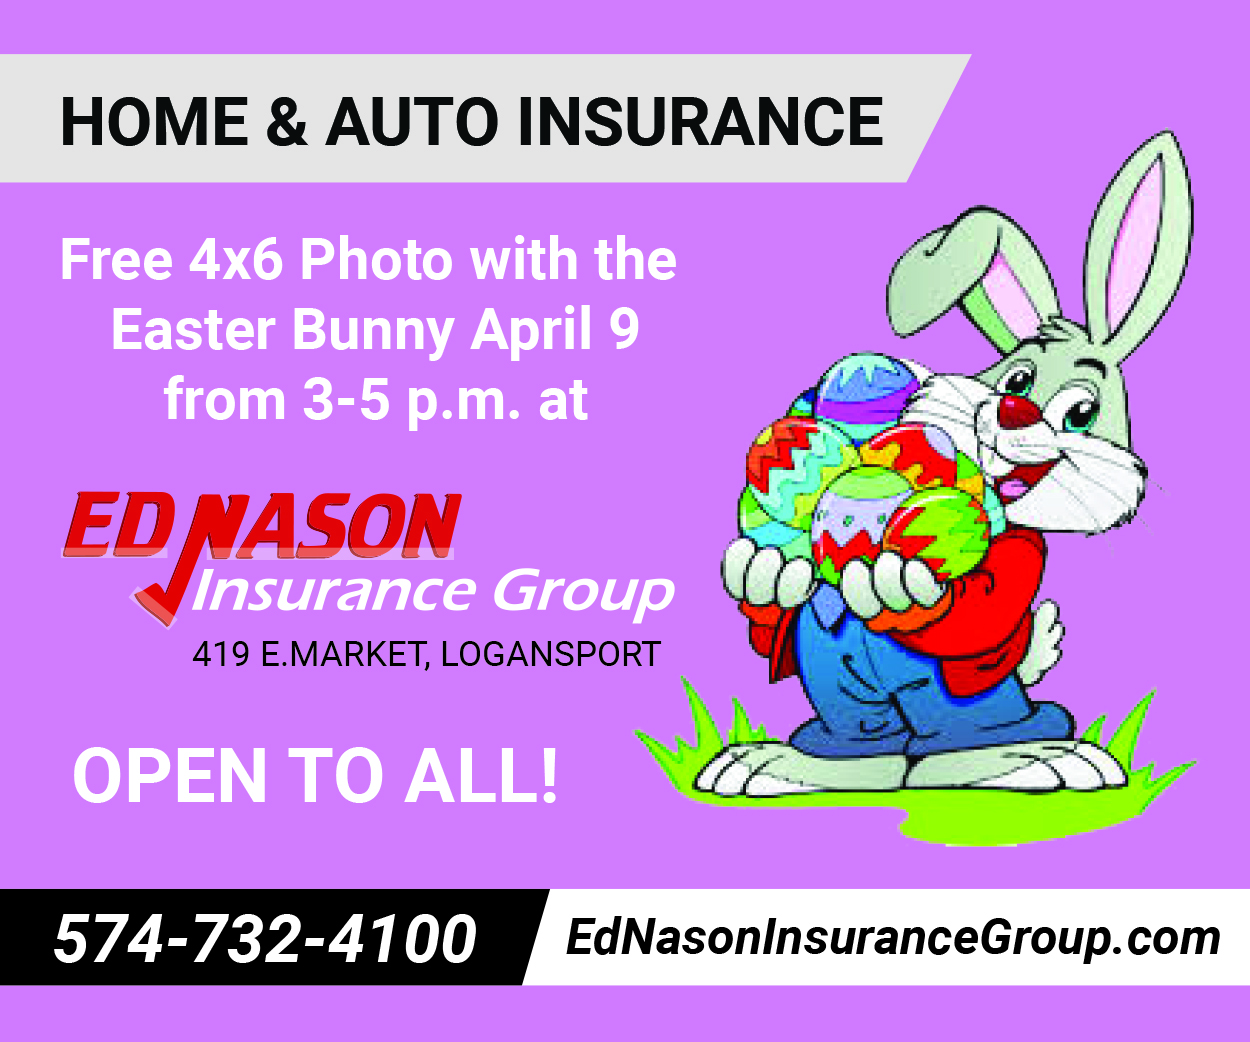 Ed Nason Insurance Group